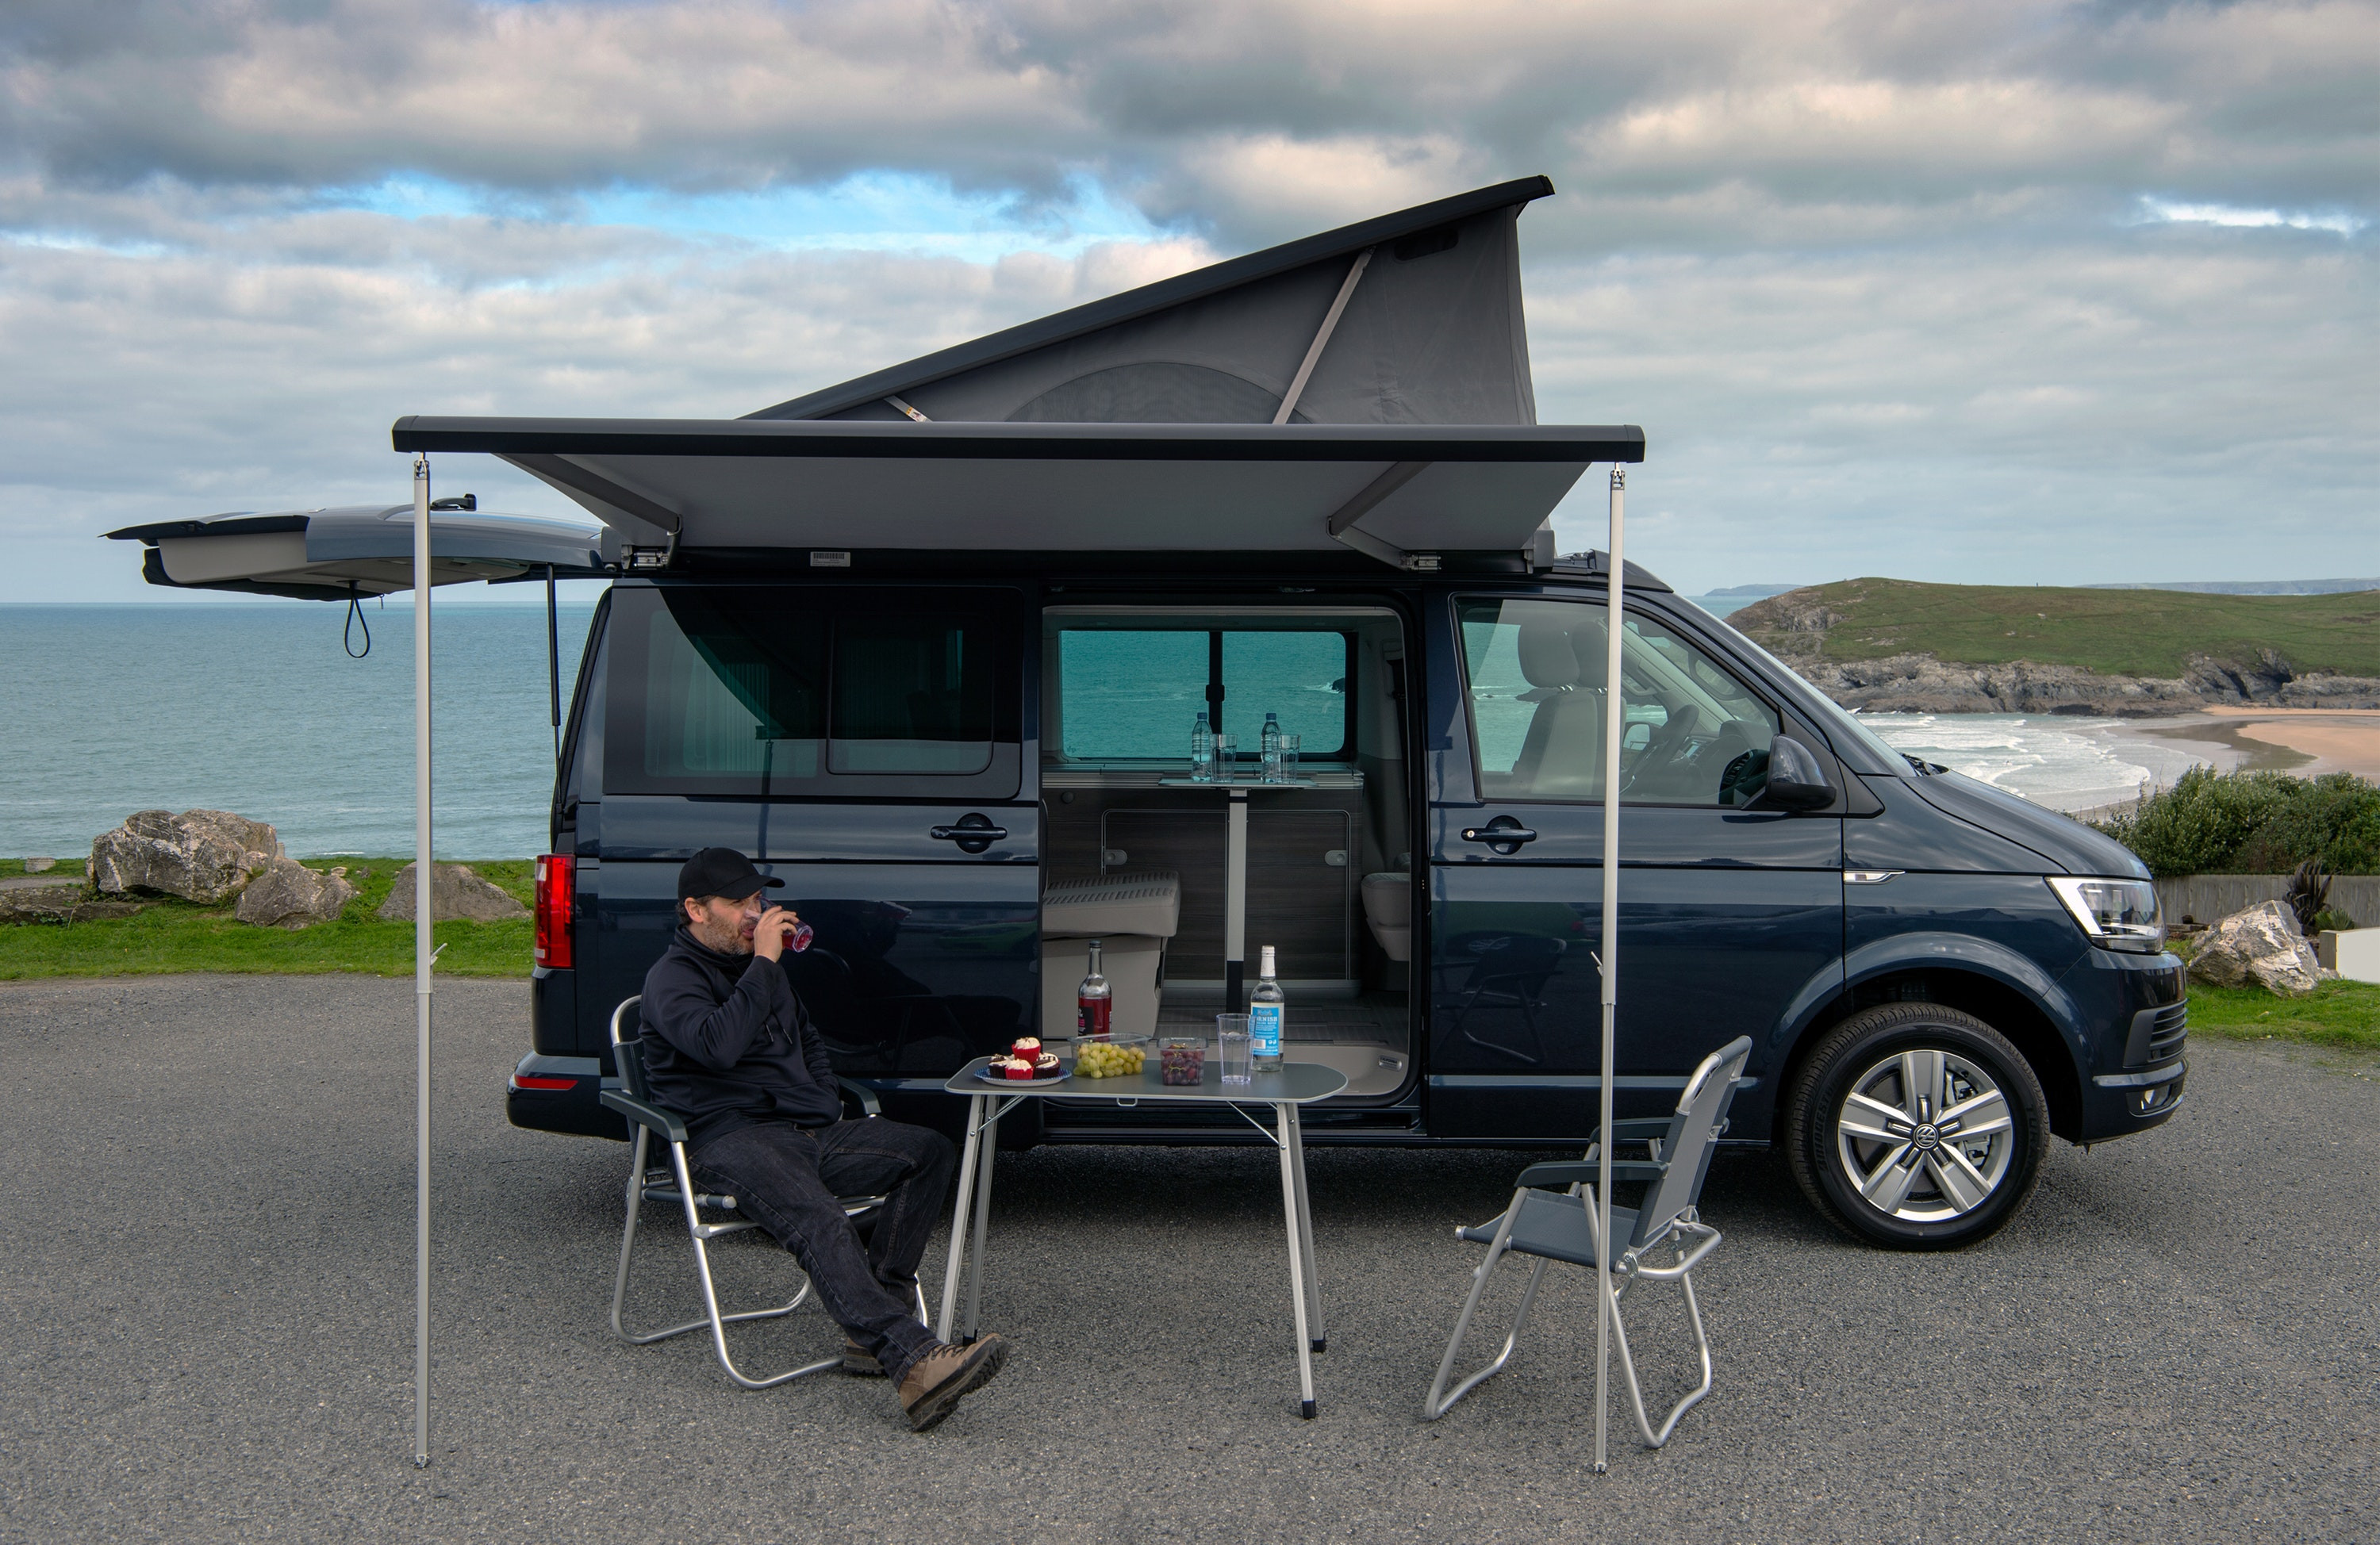 VW California Ocean campervan picnic awning